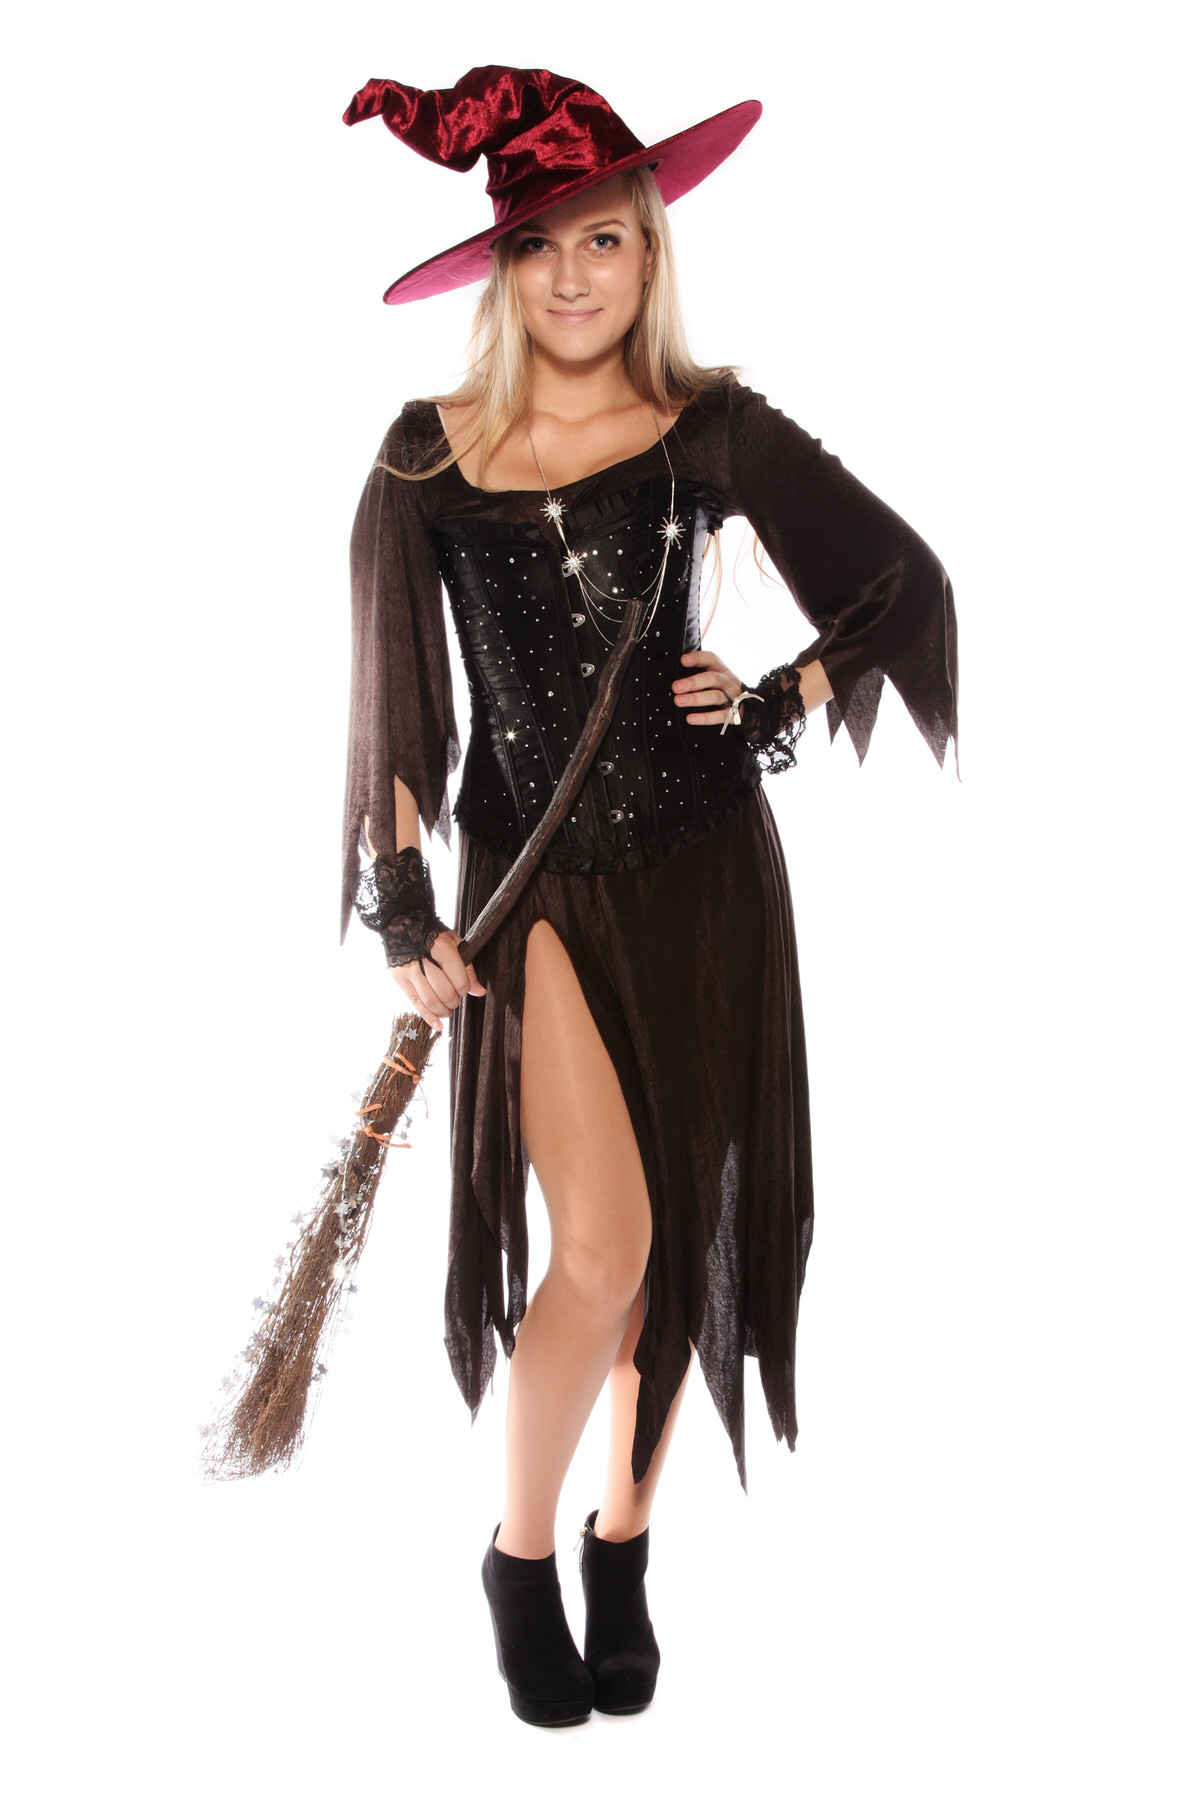 SPARKLY WITCH SLIT DRESS AND WITCHES HAT COSTUME